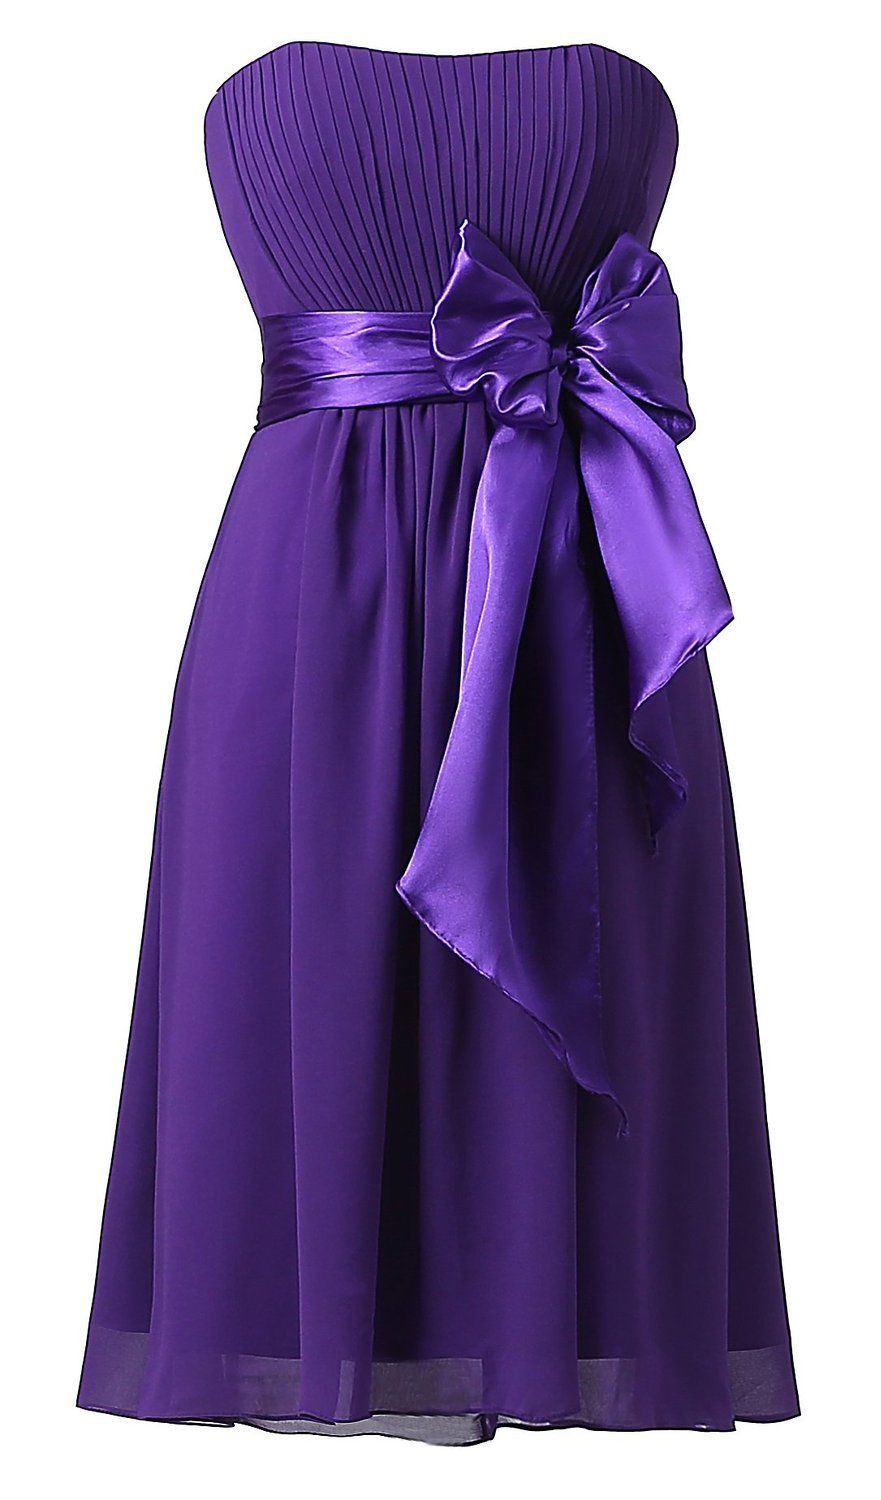 2016 Best Selling Chiffon Knee Length vestido de festa longo robe de soiree short bridesmaid dresses vestidos de novia 4